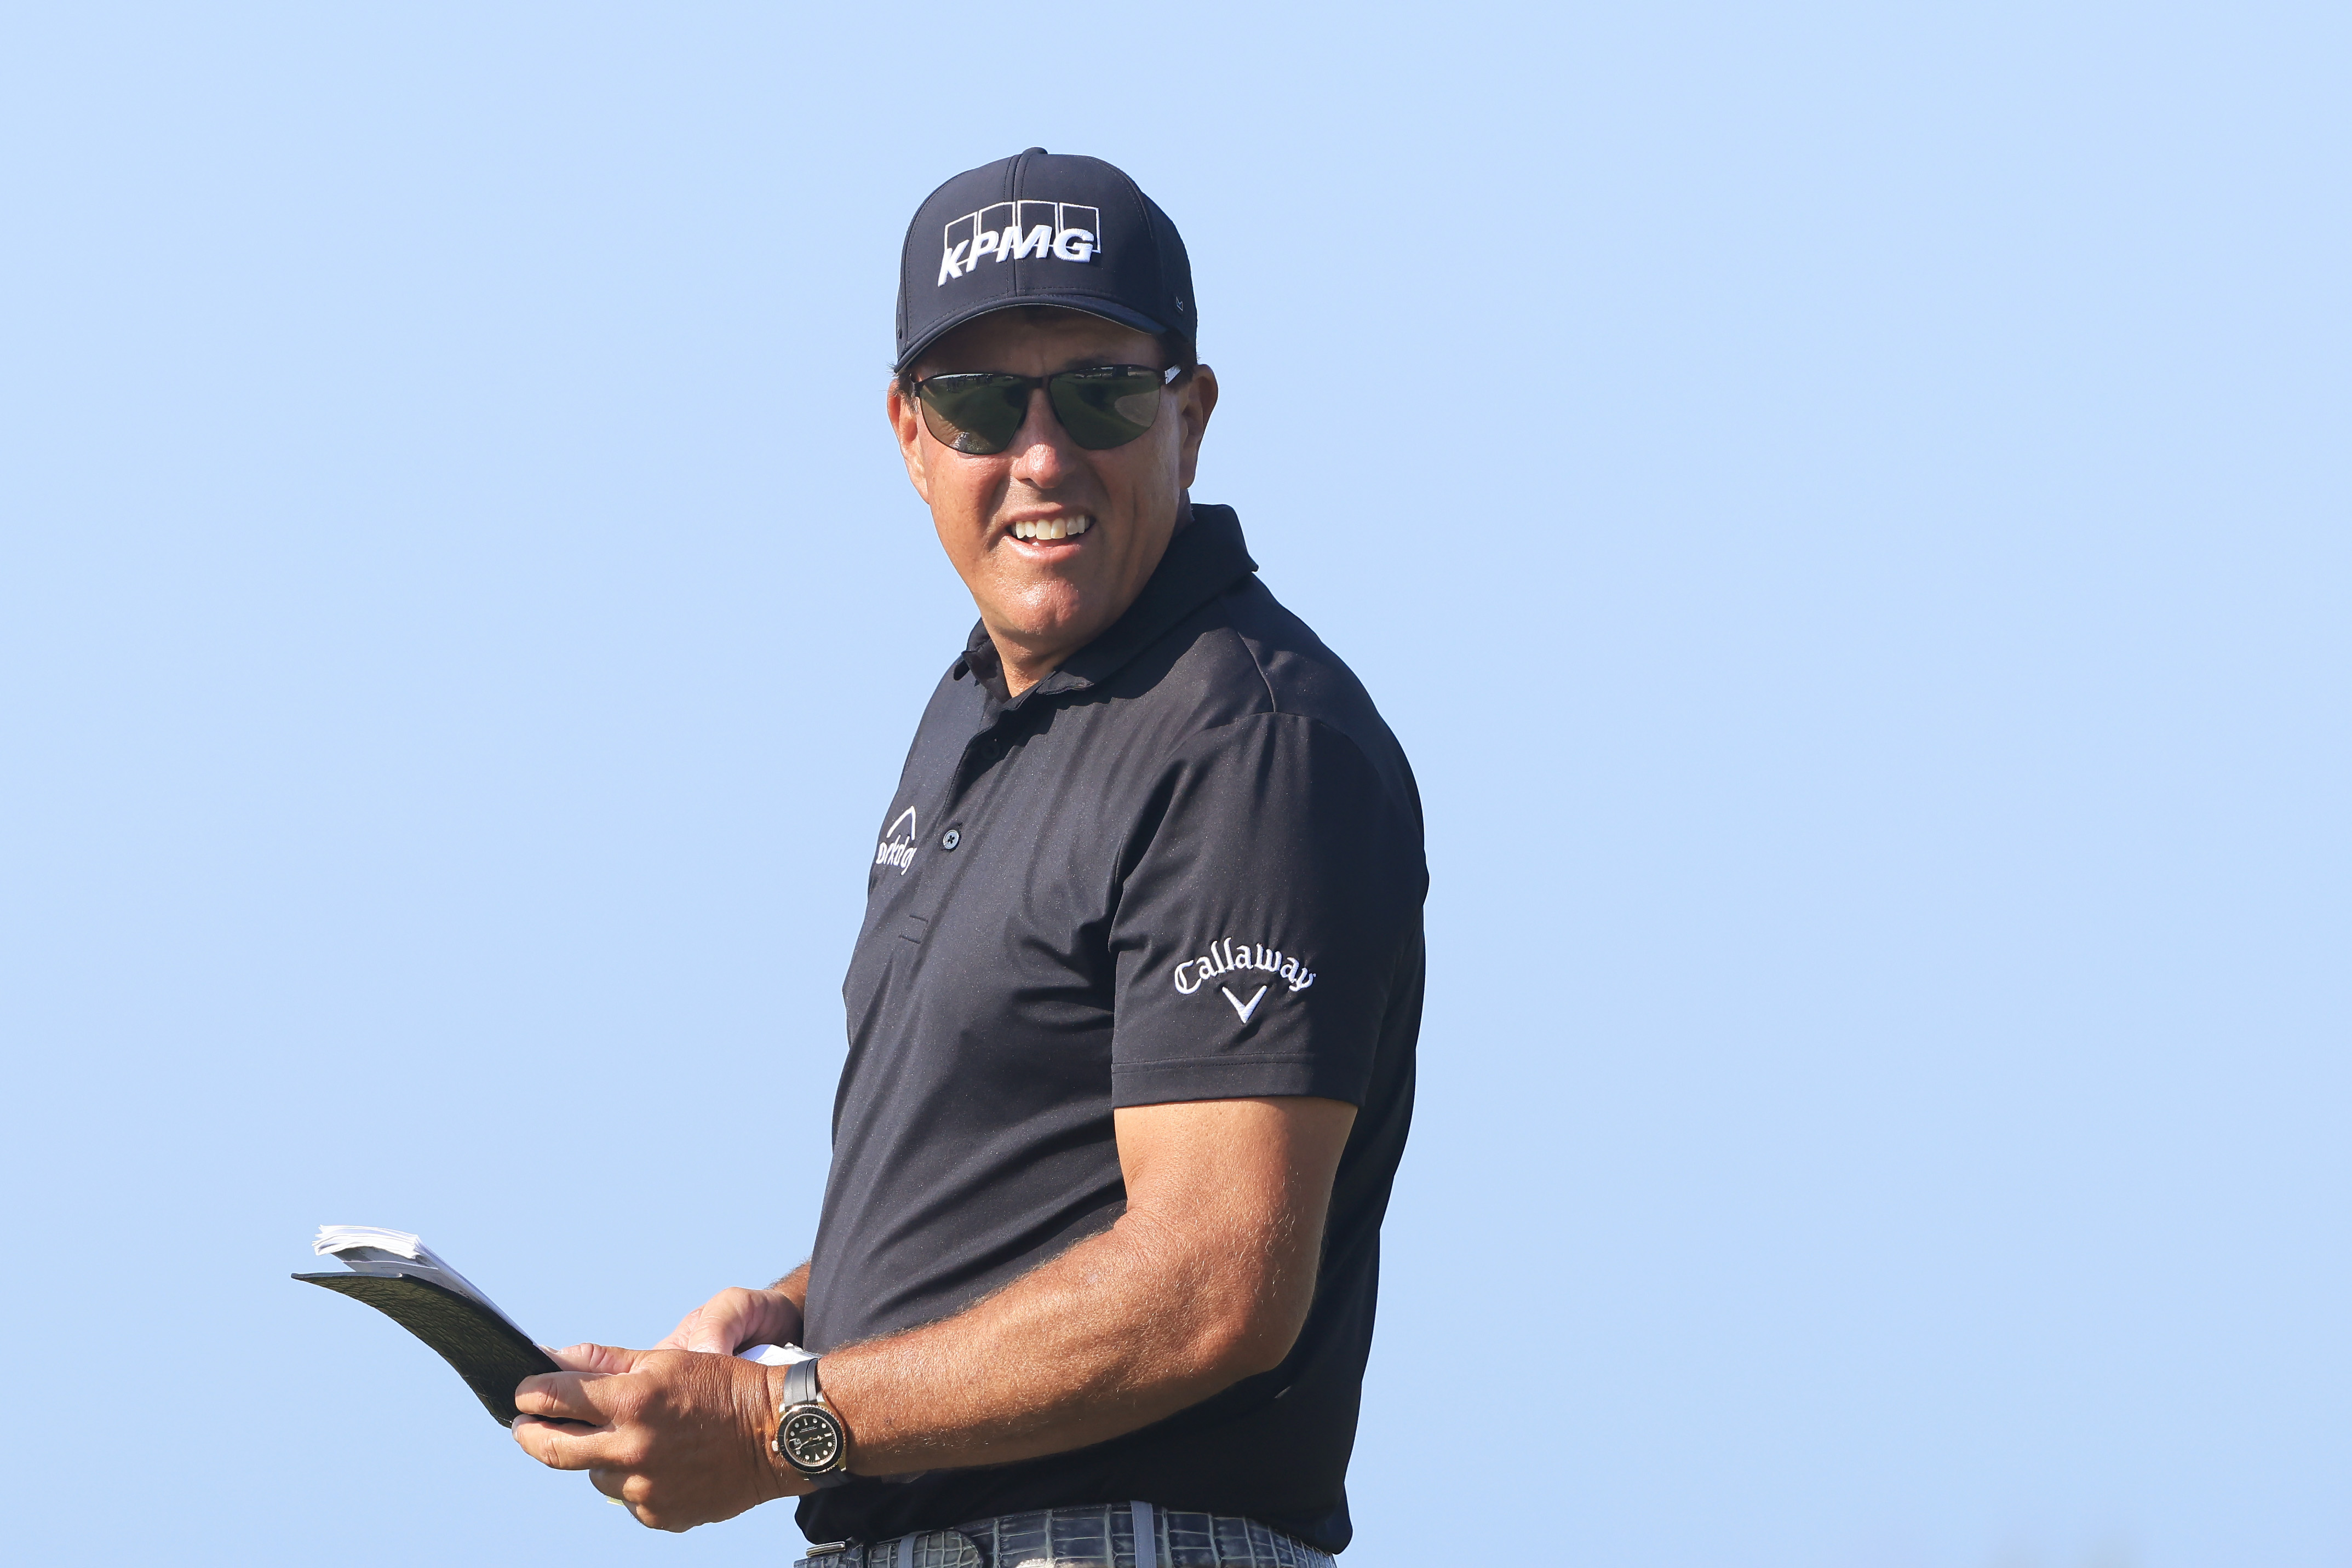 Phil Mickelson of the United States checks his yardage book on the 15th tee during the second round of the 2021 PGA Championship at Kiawah Island Resort's Ocean Course on May 21, 2021 in Kiawah Island, South Carolina.